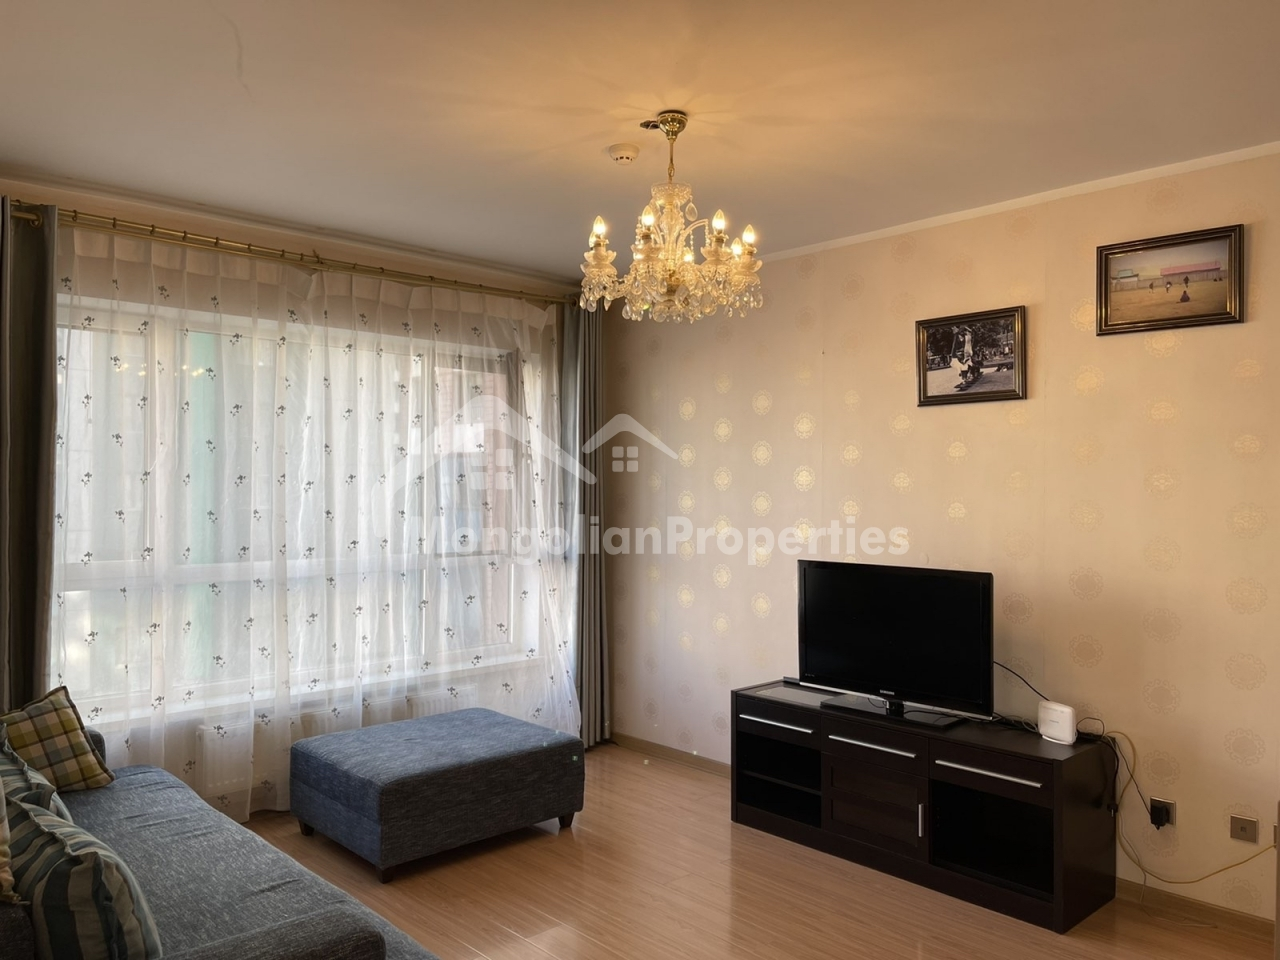 FOR RENT : 2 bedroom apartment at Nalrah Urguu